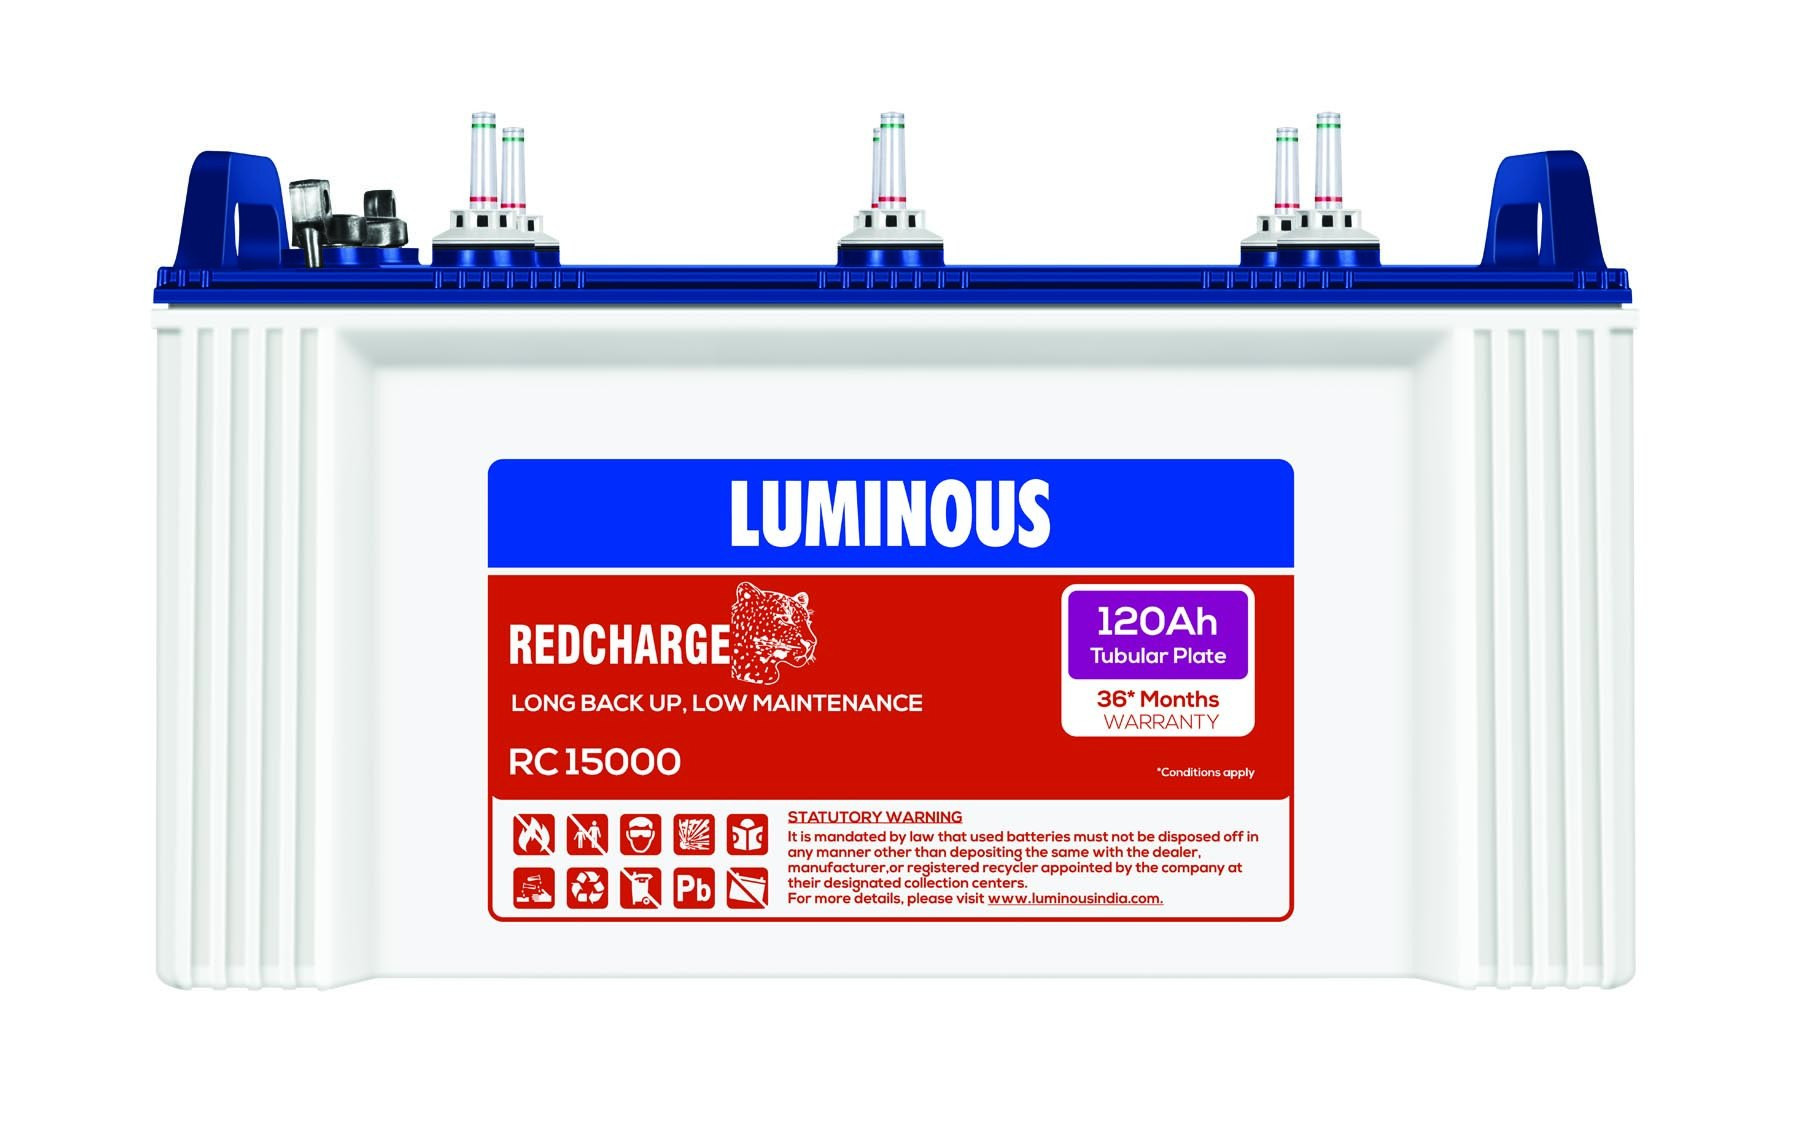 Luminous 12v 120AH Redcharge Tall Tubular Battery